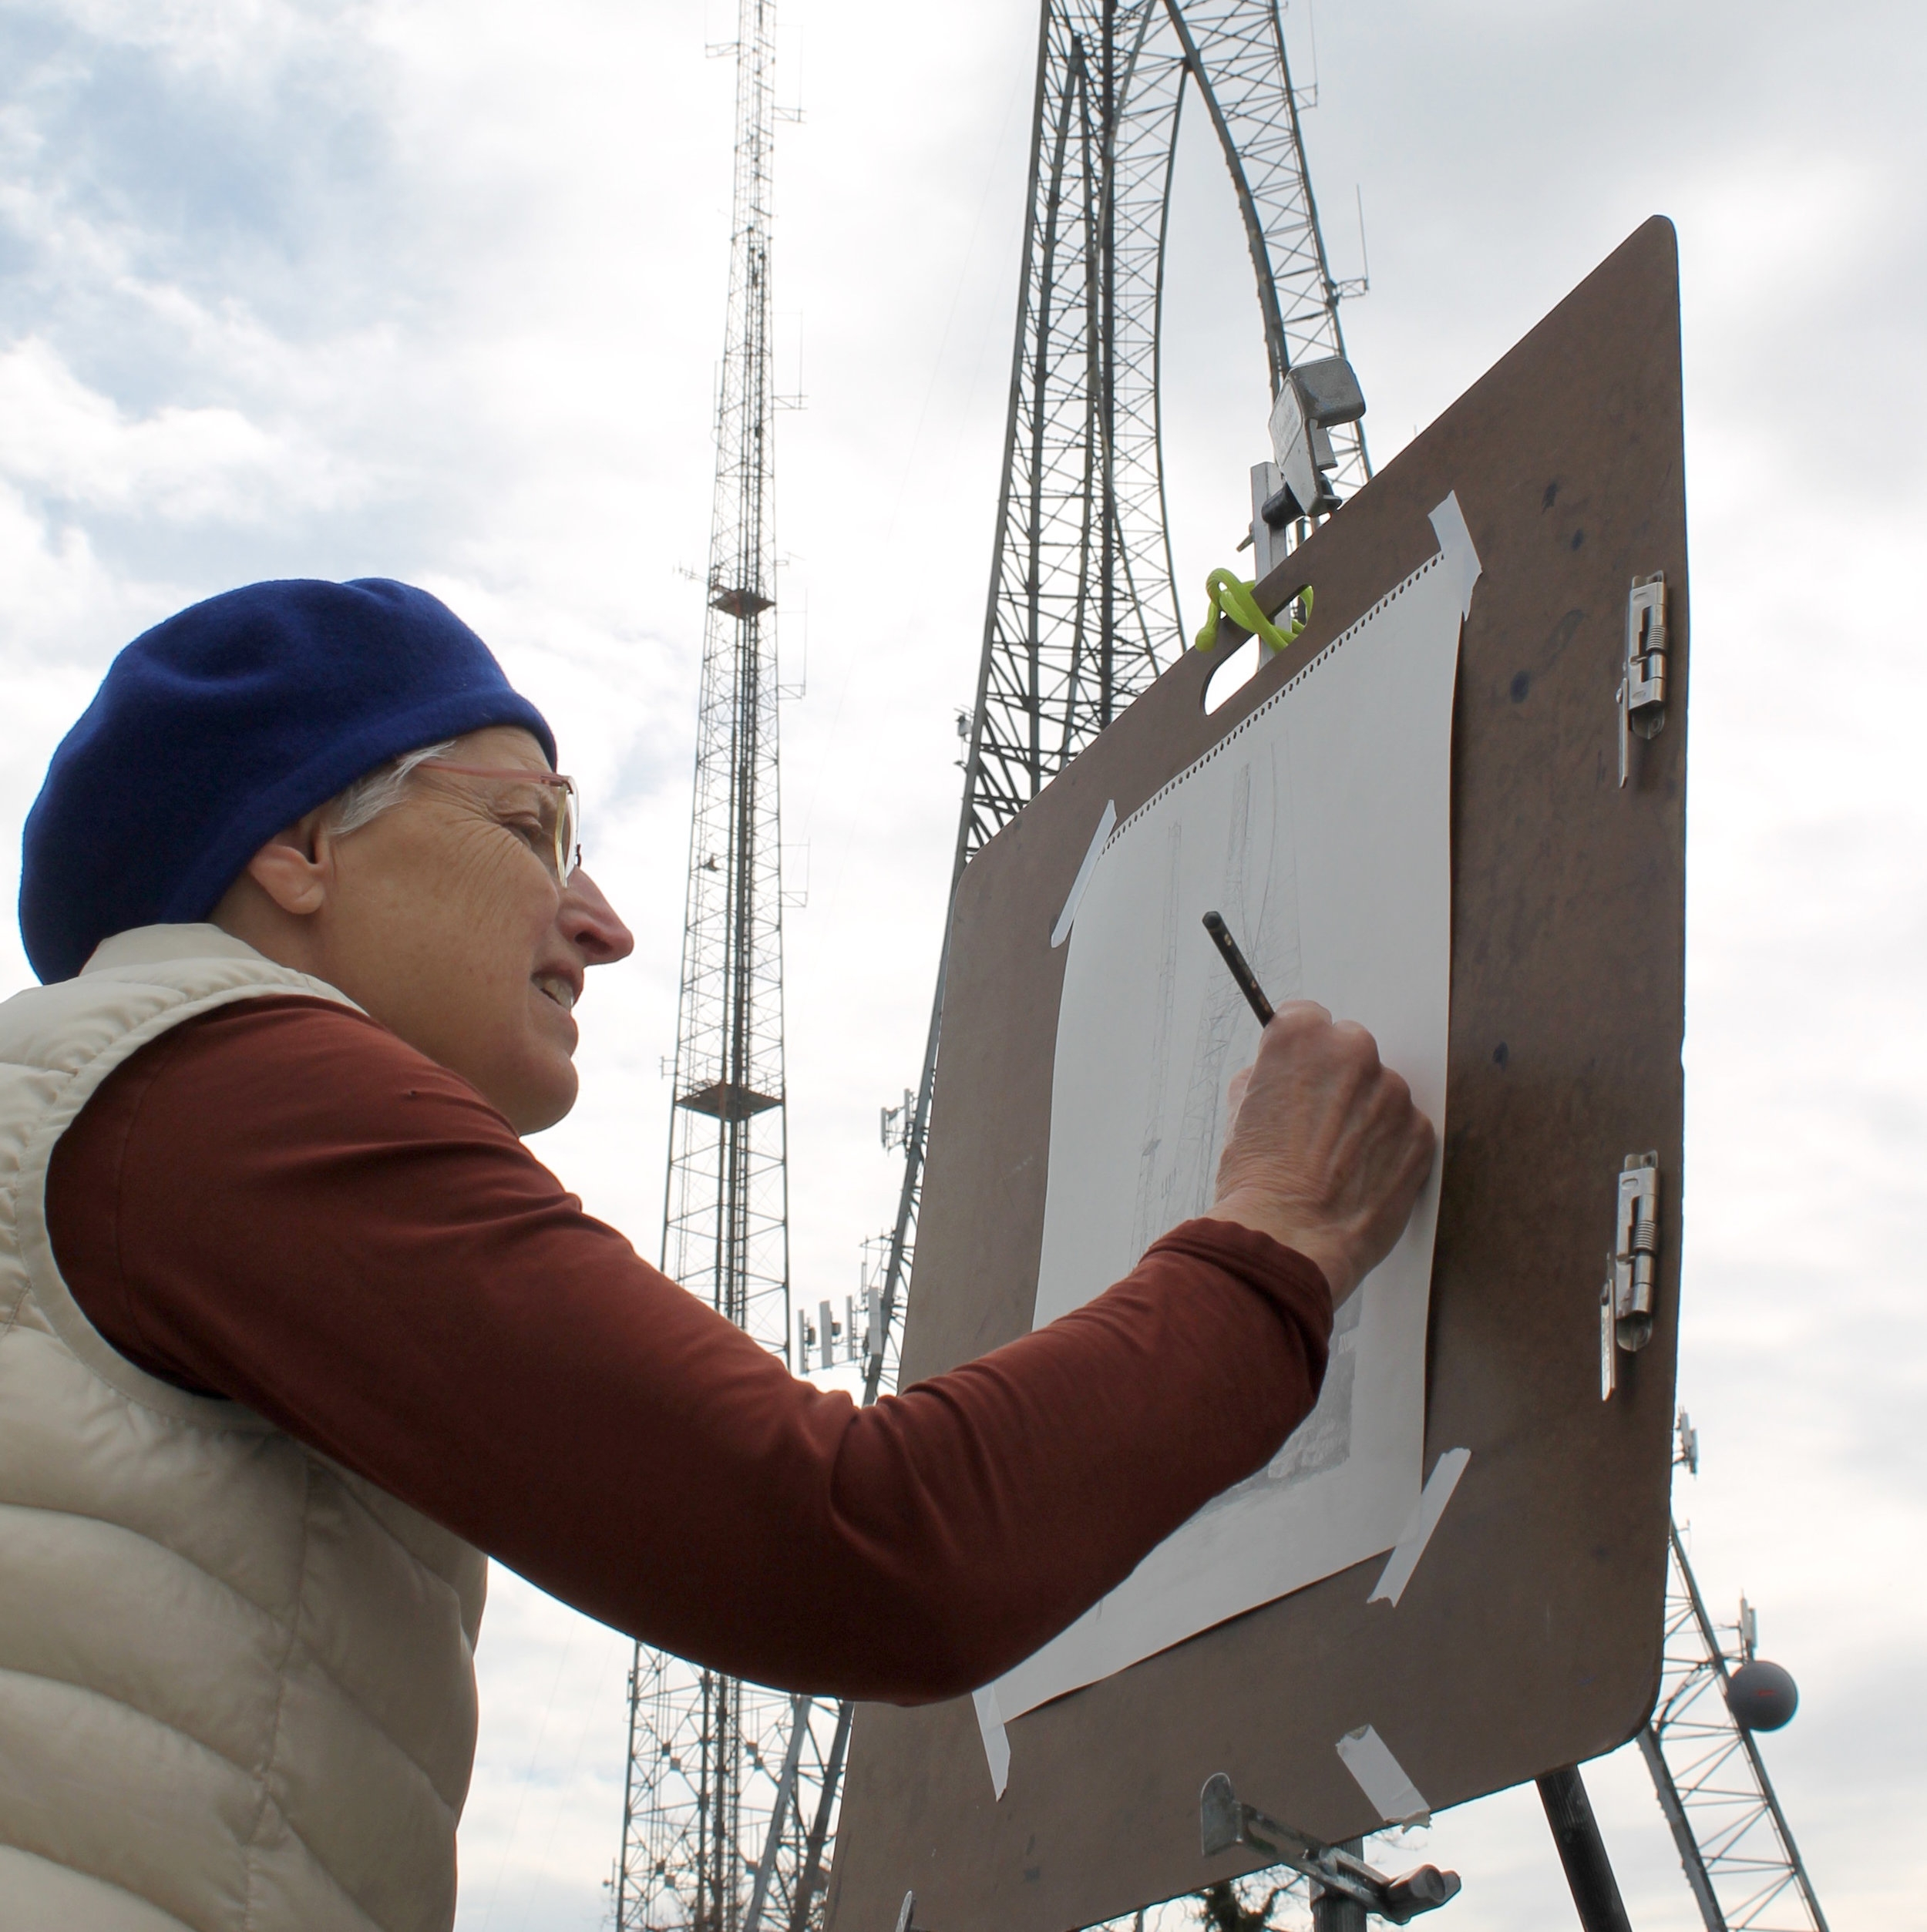 Drawing at the Hughes Tower in Brightwood, Washington, DC, photo by André A. Wilson